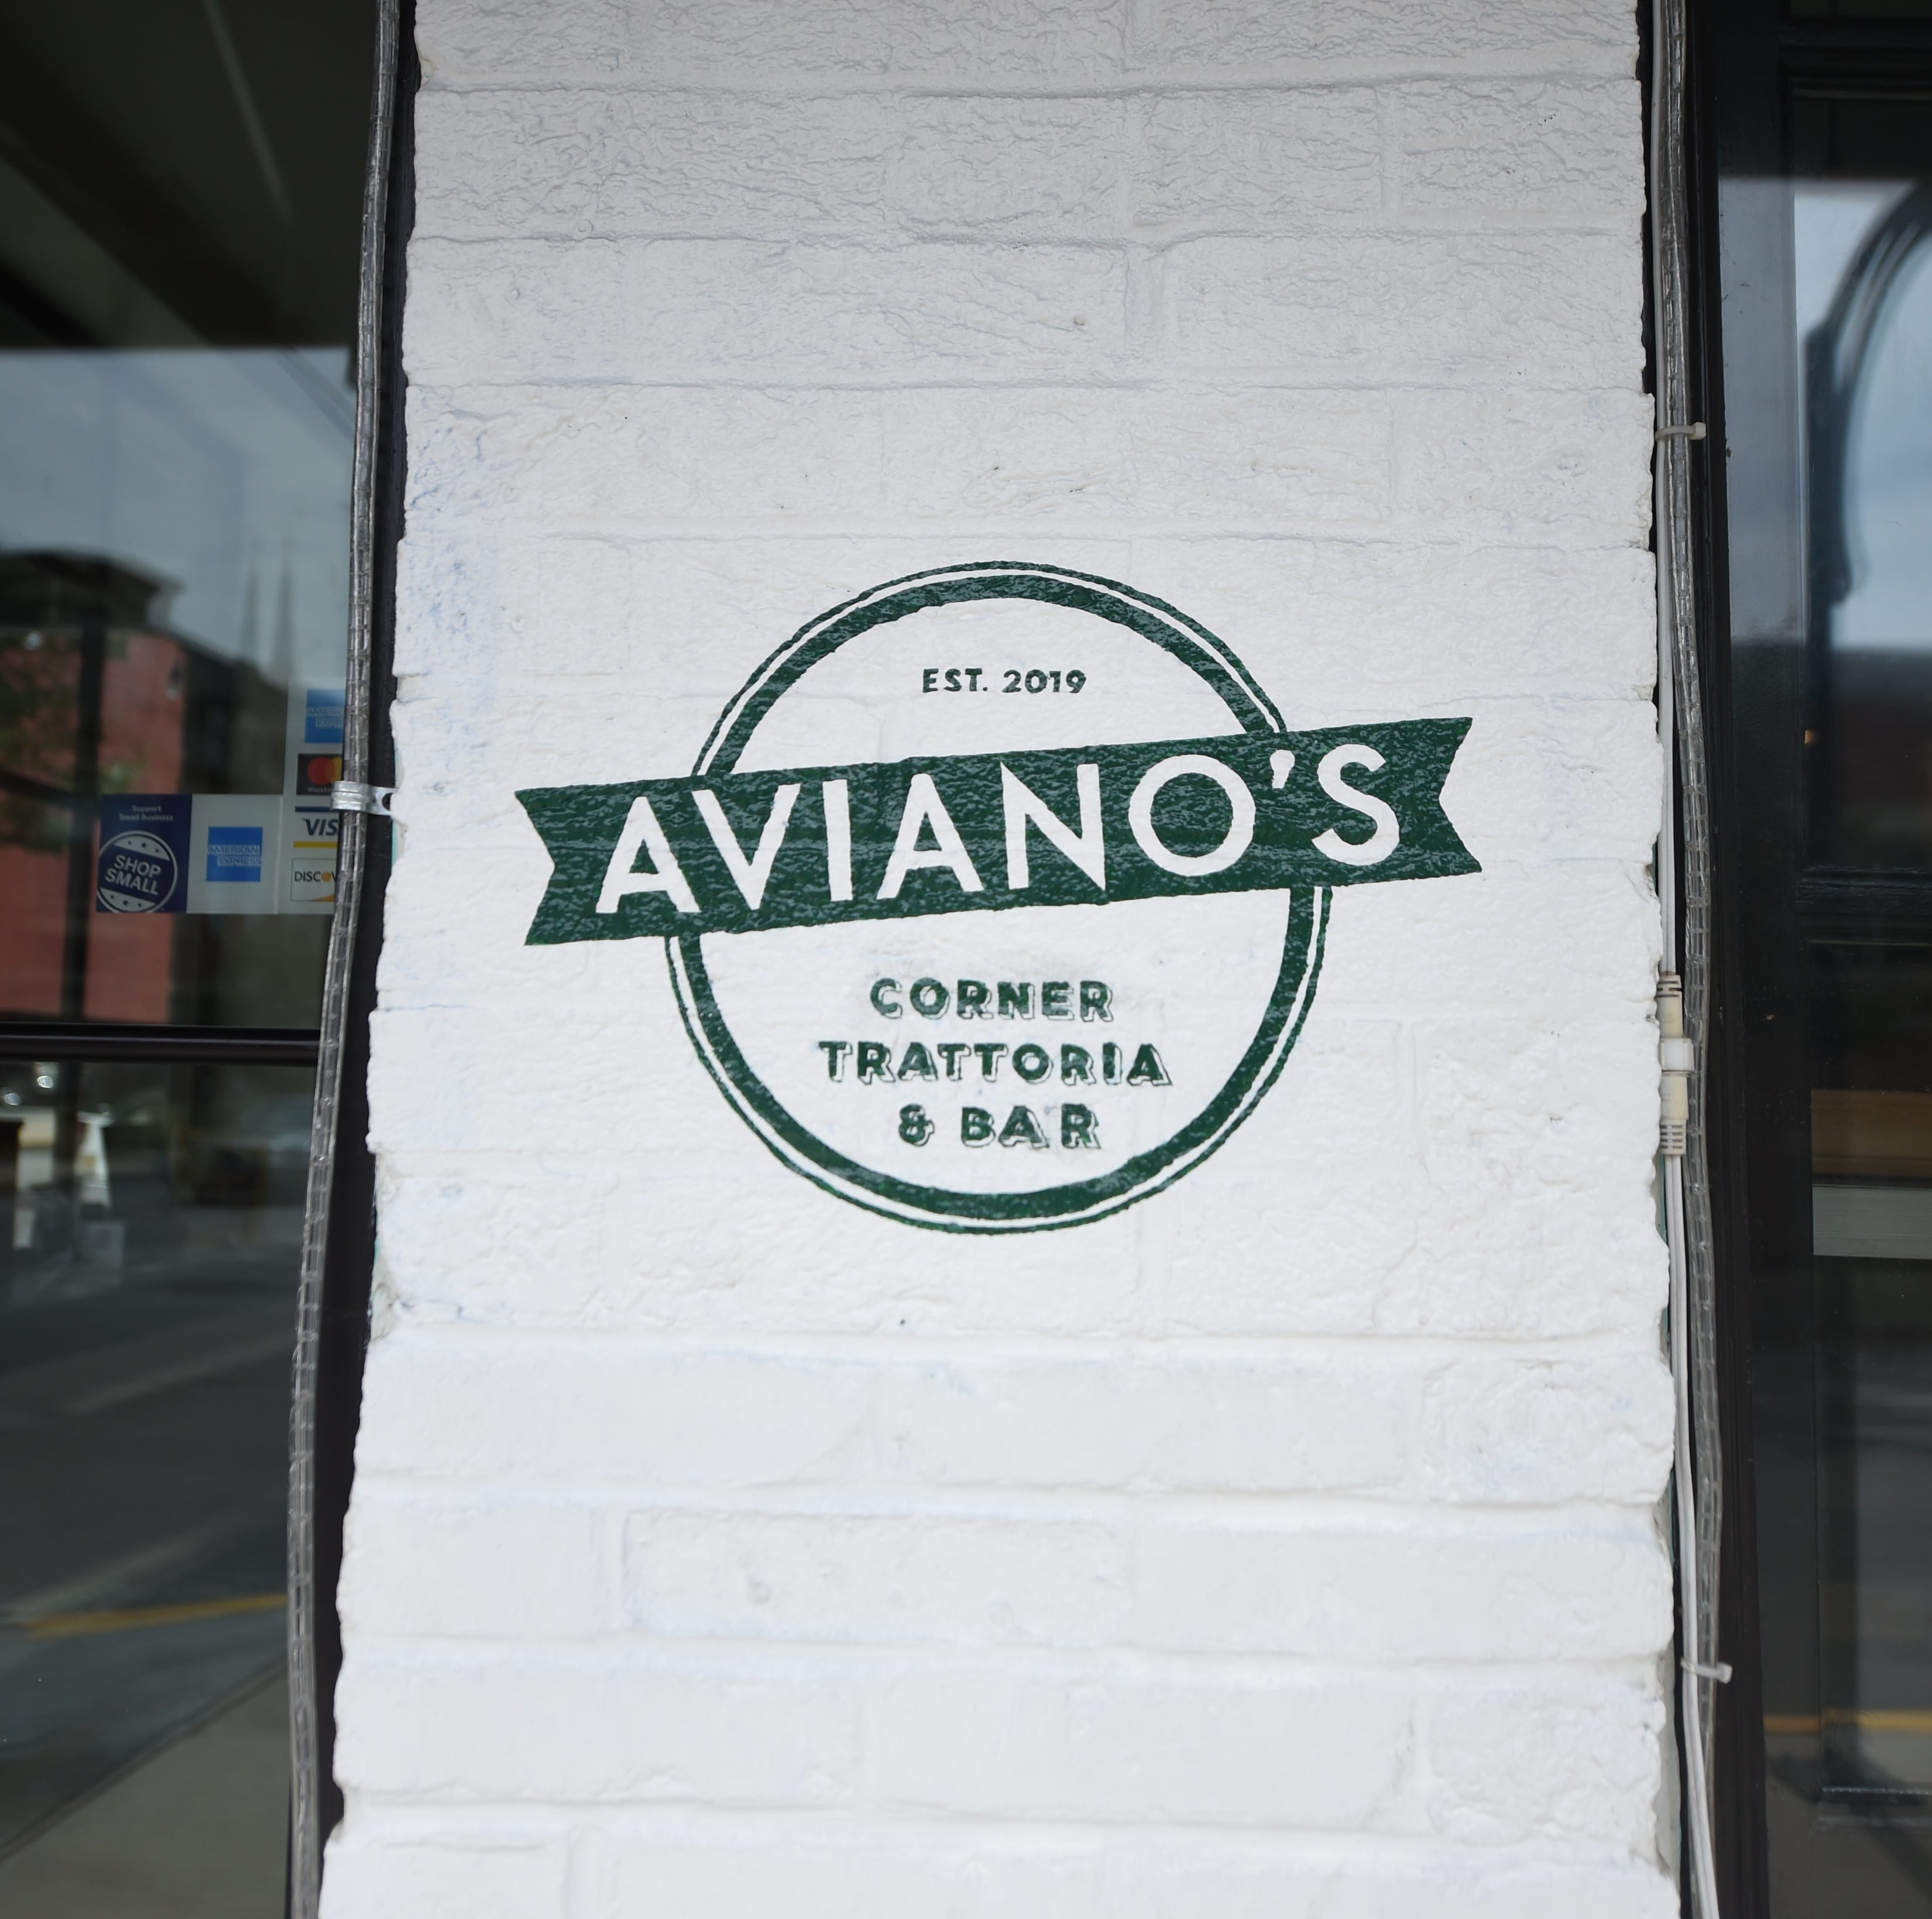 Aviano's Corner Trattoria at 101 S. Duke Street is expected to open later this summer.